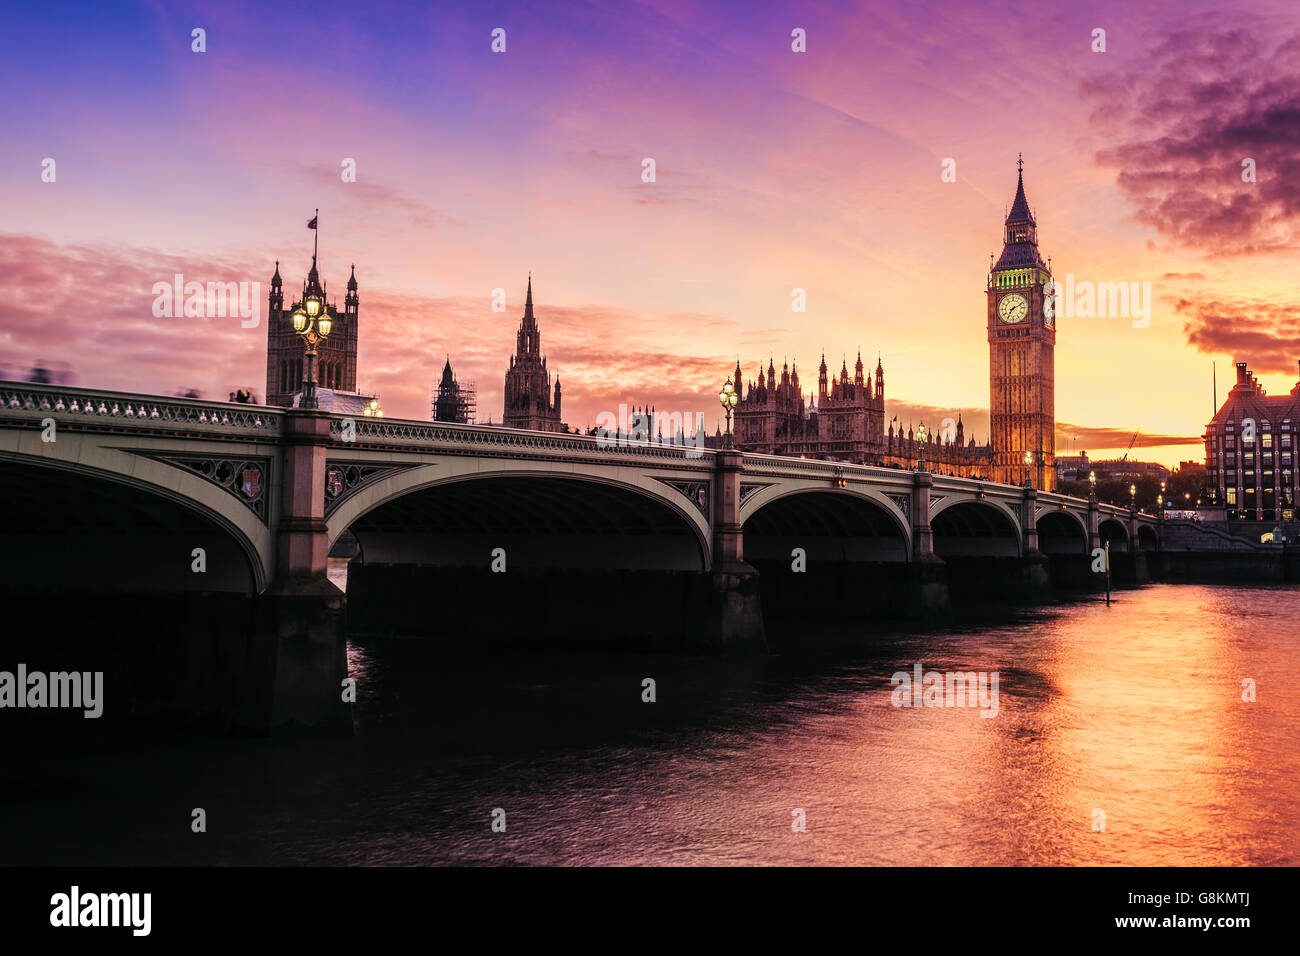 Dramatic sunset over famous Big Ben clock tower in London, UK. - Stock Image